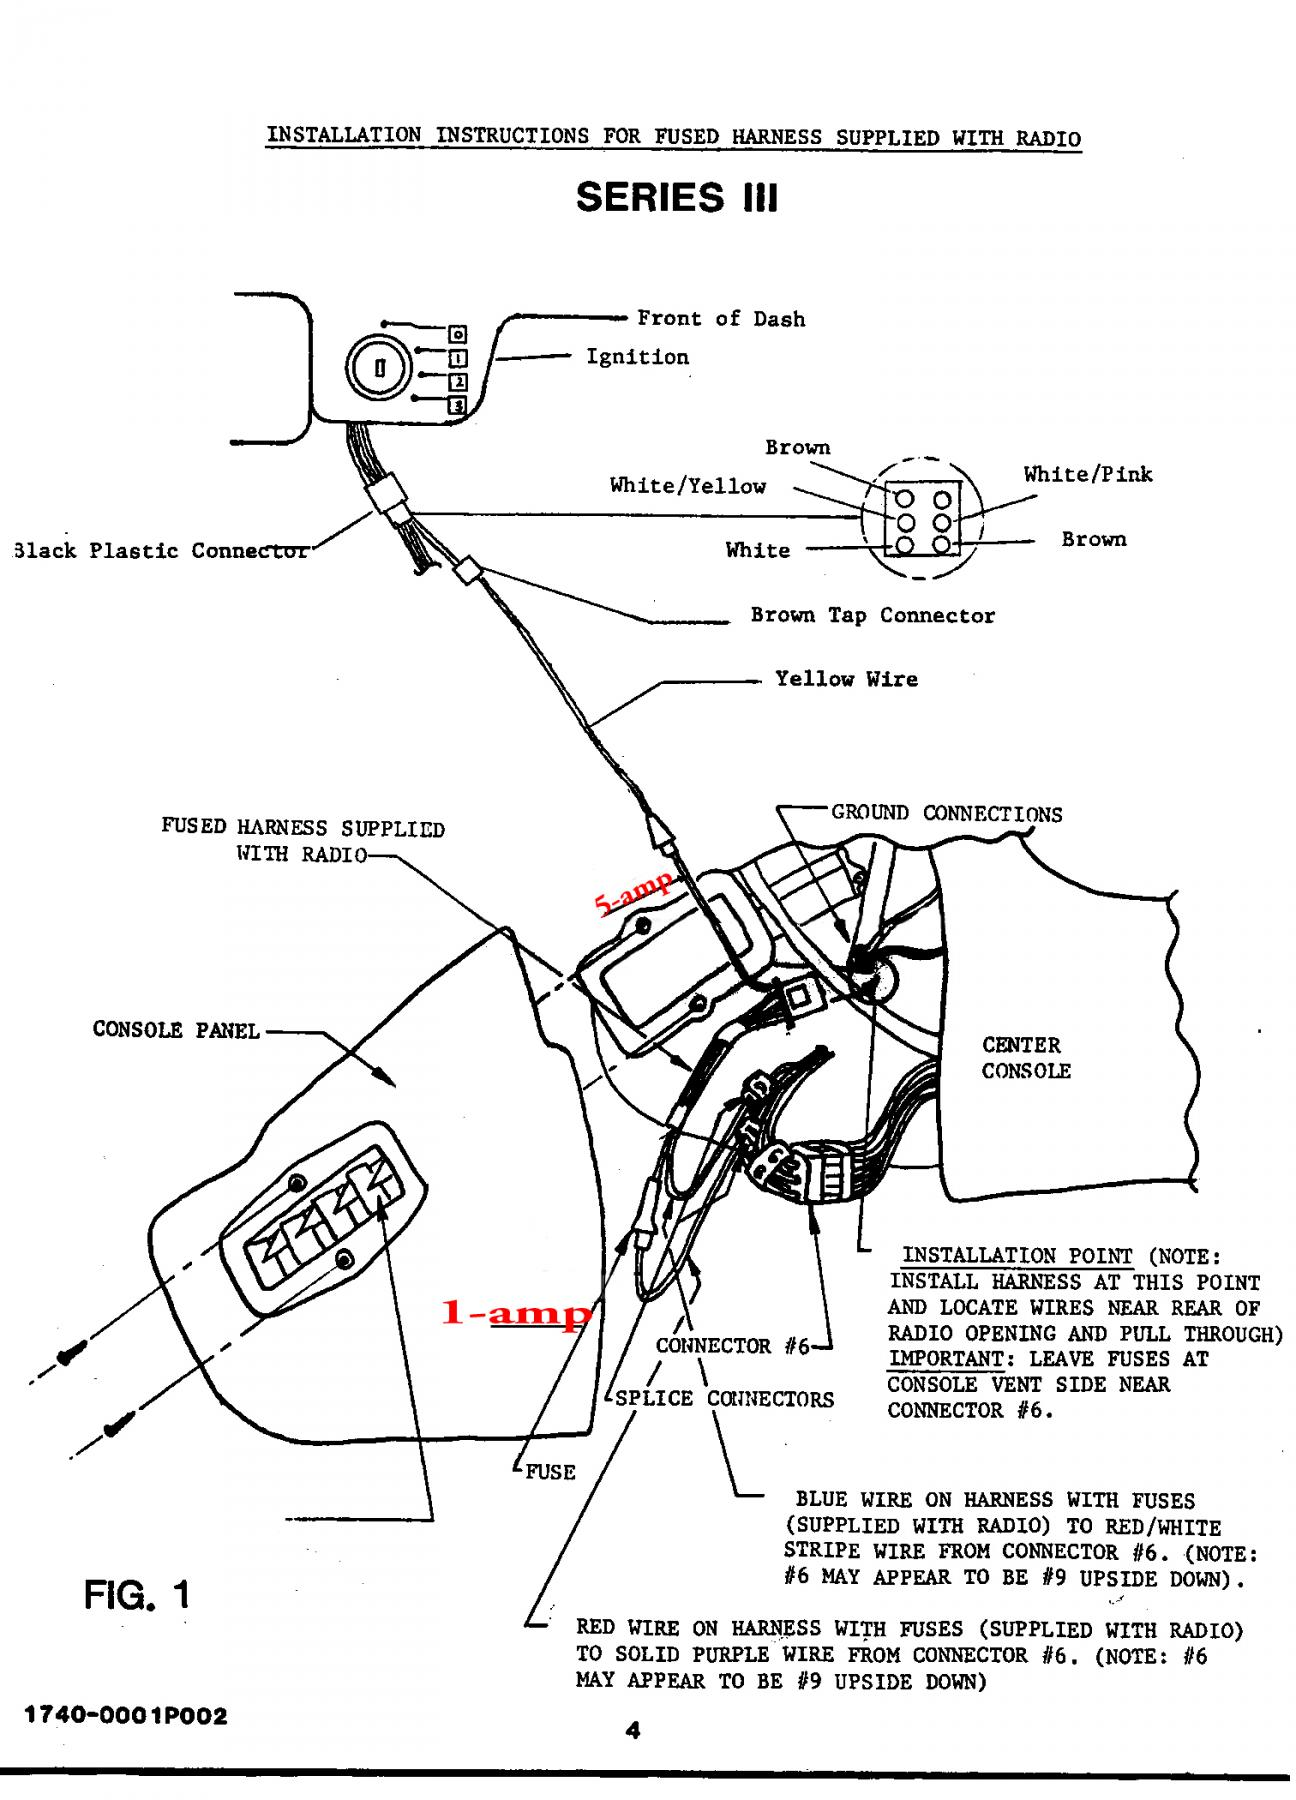 Radio Line Fuse Location